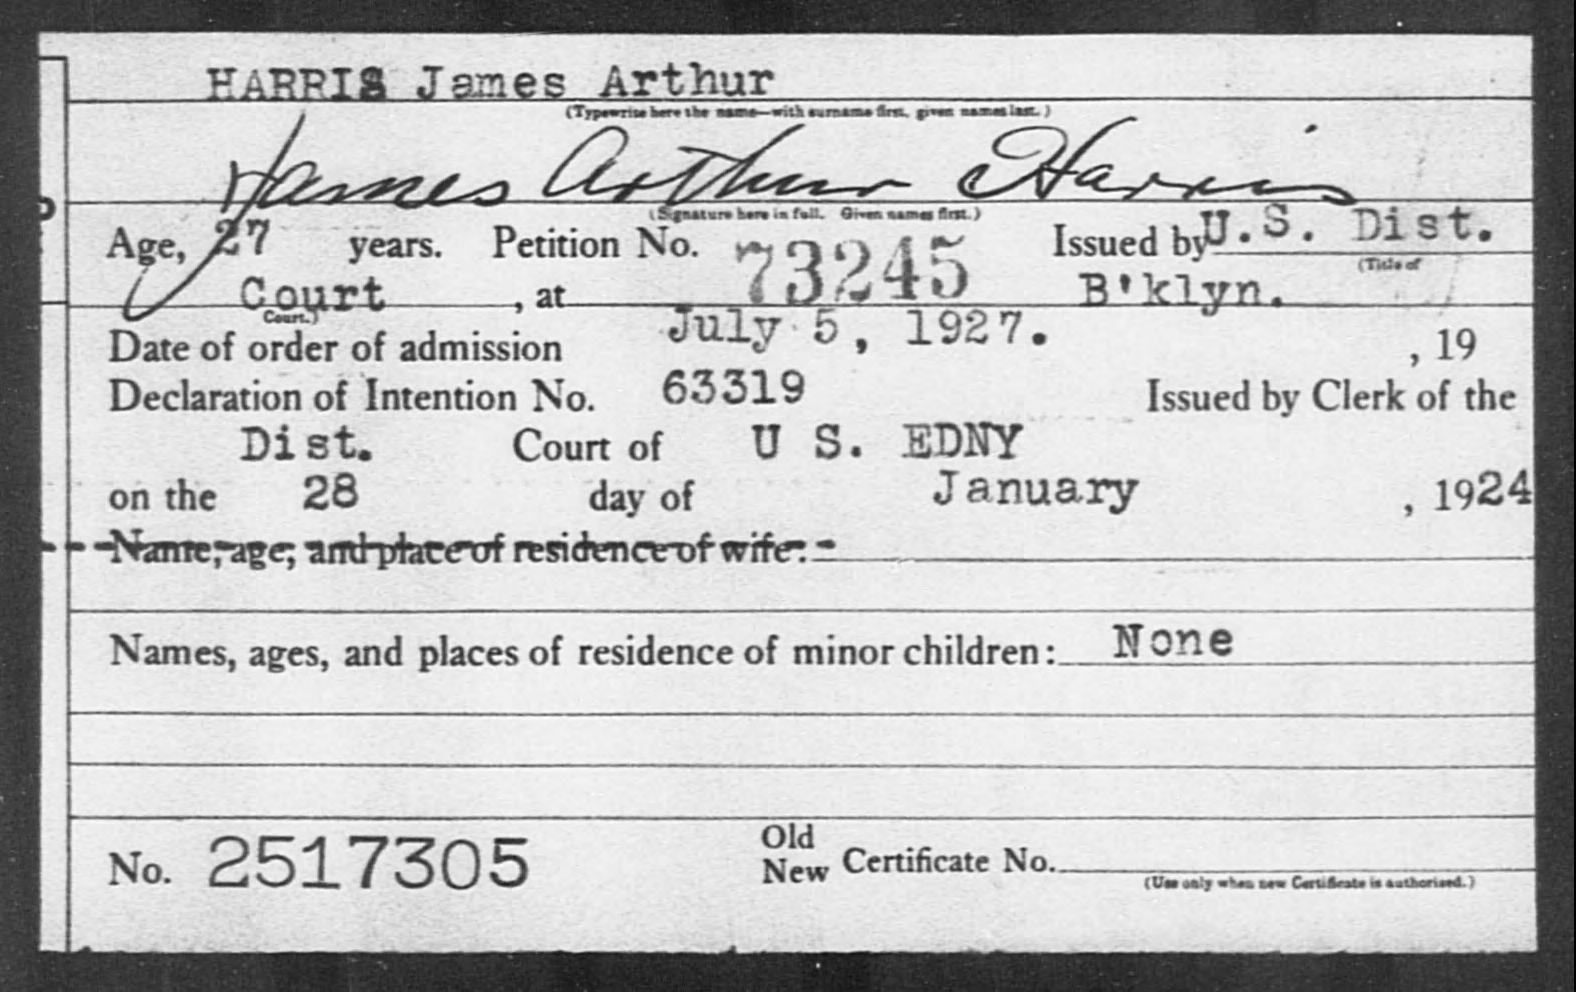 HARRIS James Arthur - Born: [BLANK], Naturalized: 1927